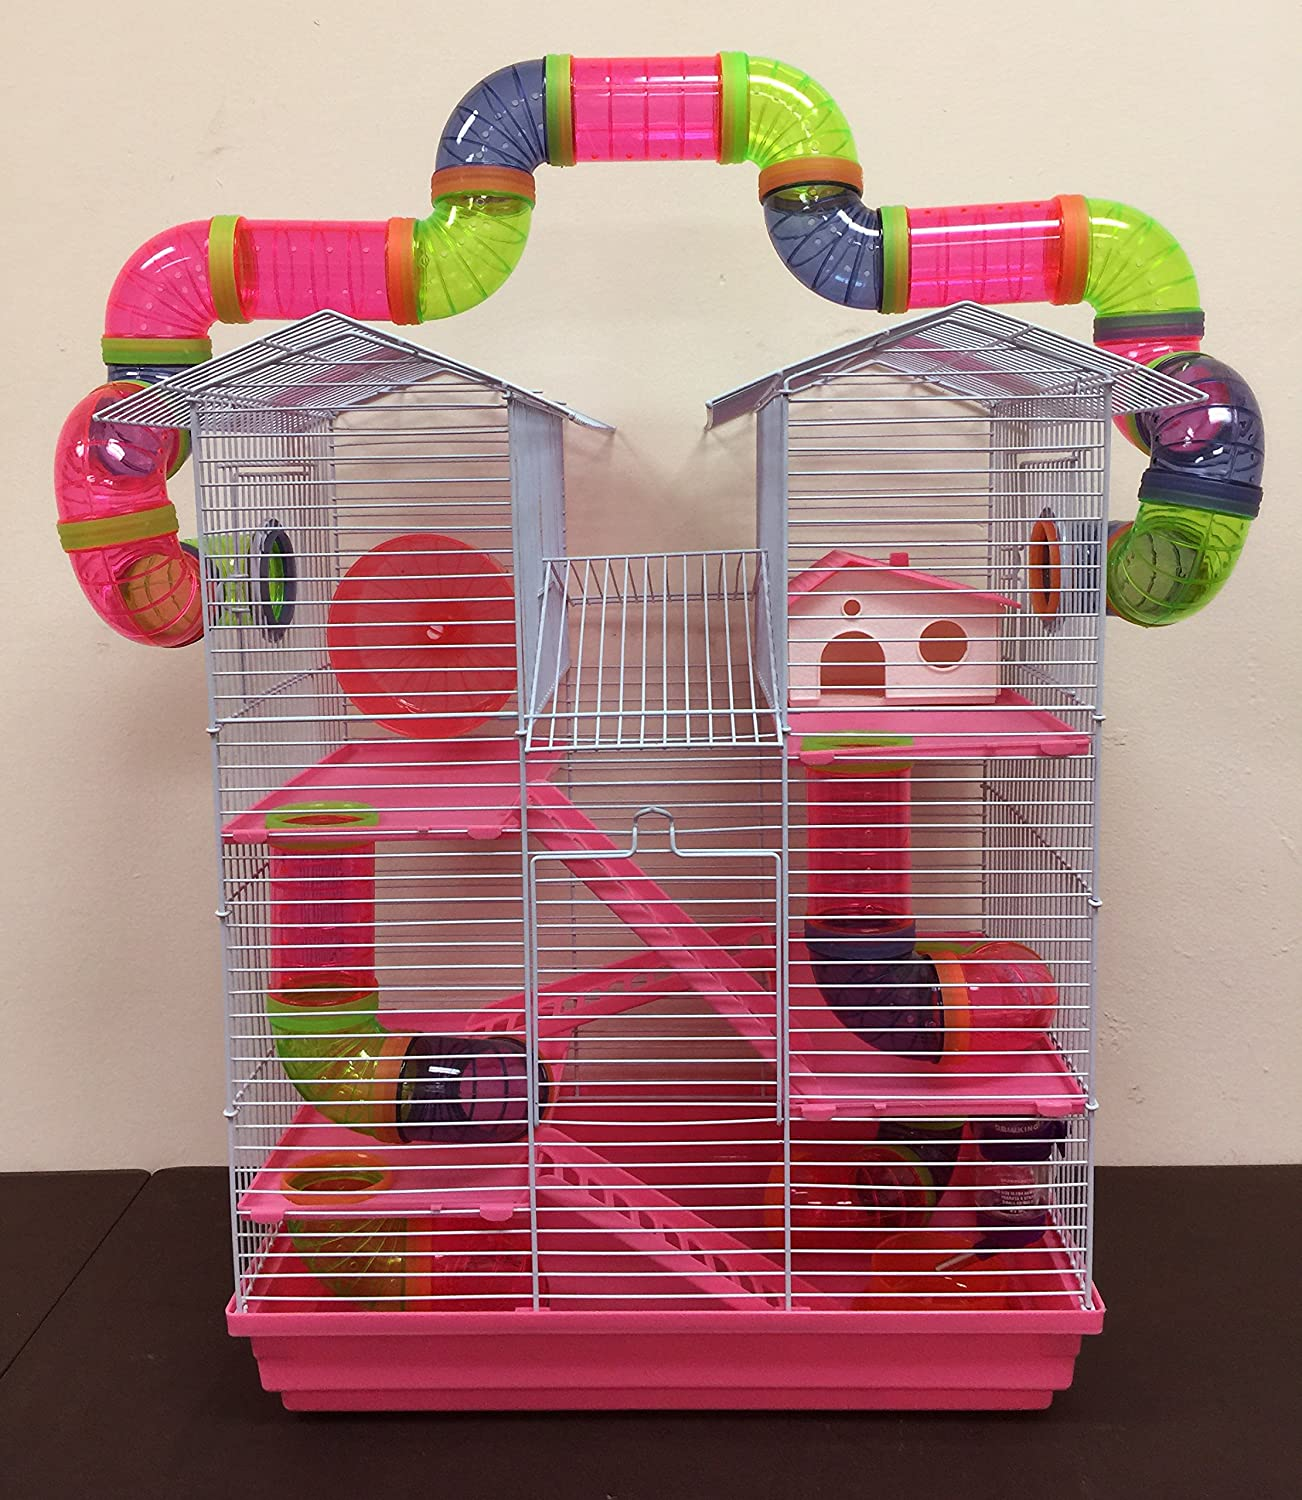 5 Floor Large Twin Towner Syrian Hamster Rodent Gerbil Mouse Mice Rat Cage with Crossing Tube Tunnel With Crossing Tube) Mcage